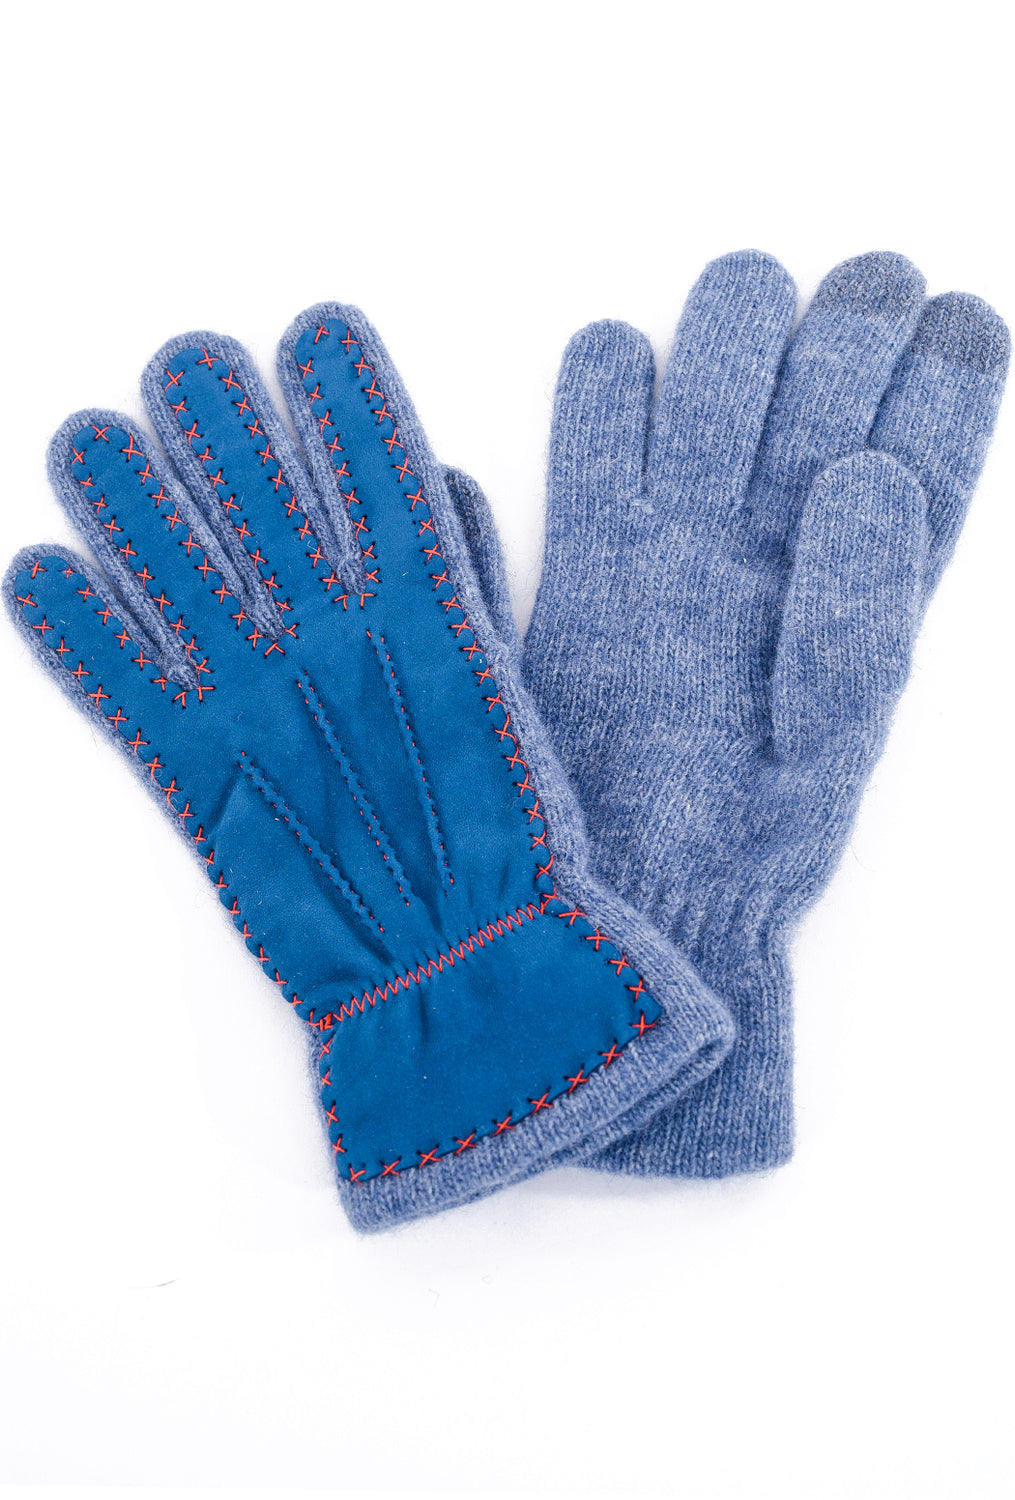 Santacana Madrid Nubuck/Angora Knit Gloves, Denim/Orange One Size Denim